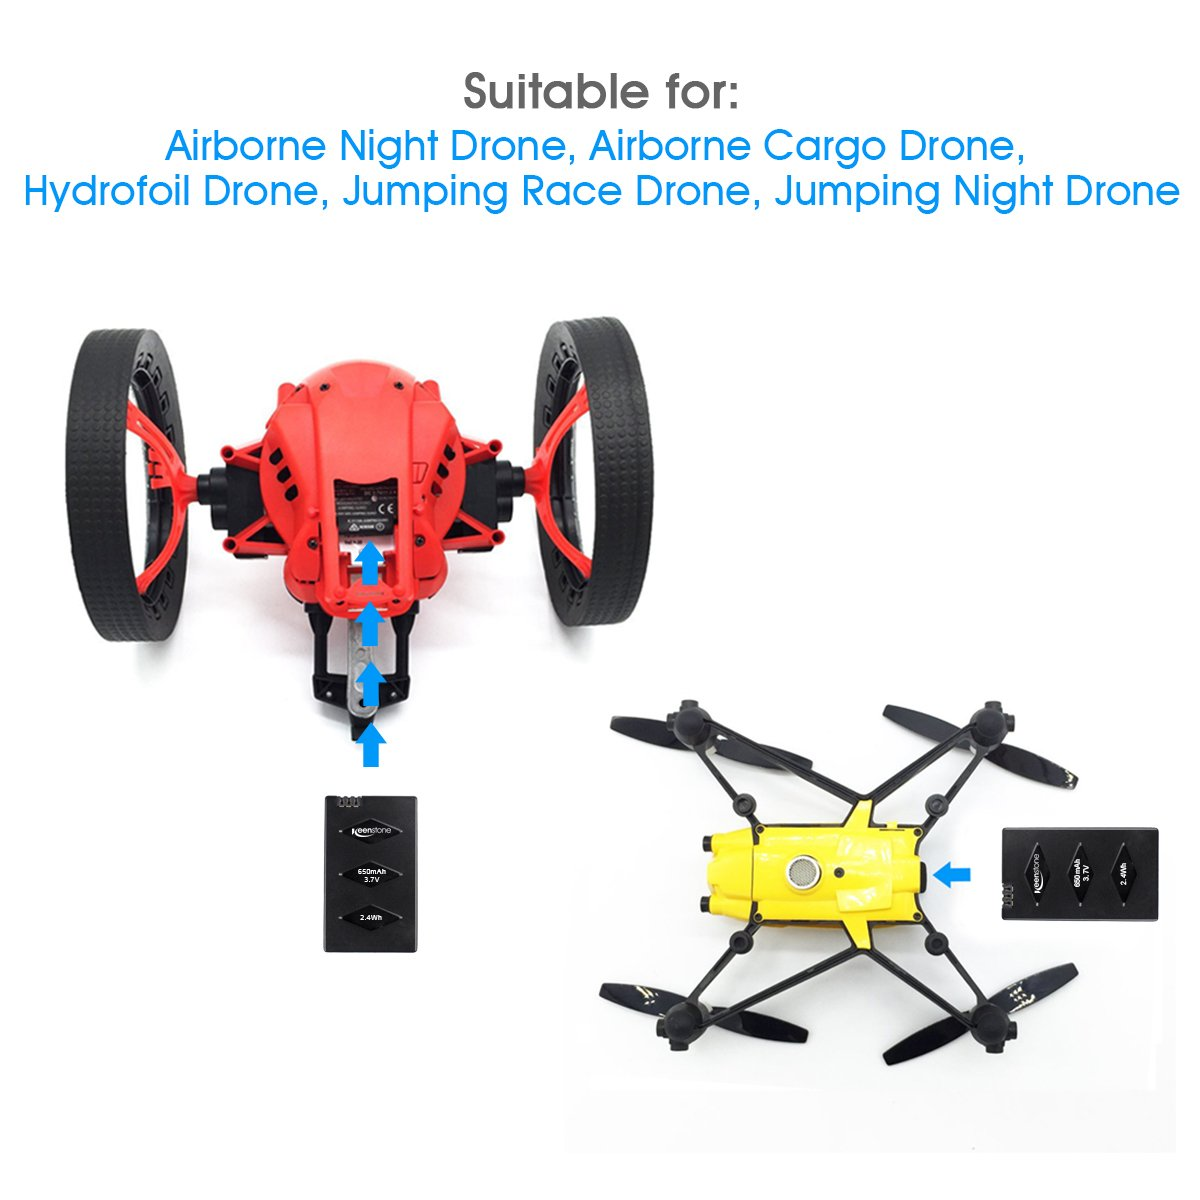 Parrot Minidrone Battery, Keenstone 3PCS 3.7V 650mAh Li-po Battery w/3-Port Charger for Jumping Sumo Swing Mambo Rolling Spider Air Night Airborne Cargo Jumping Race Night Hydrofoil Drone